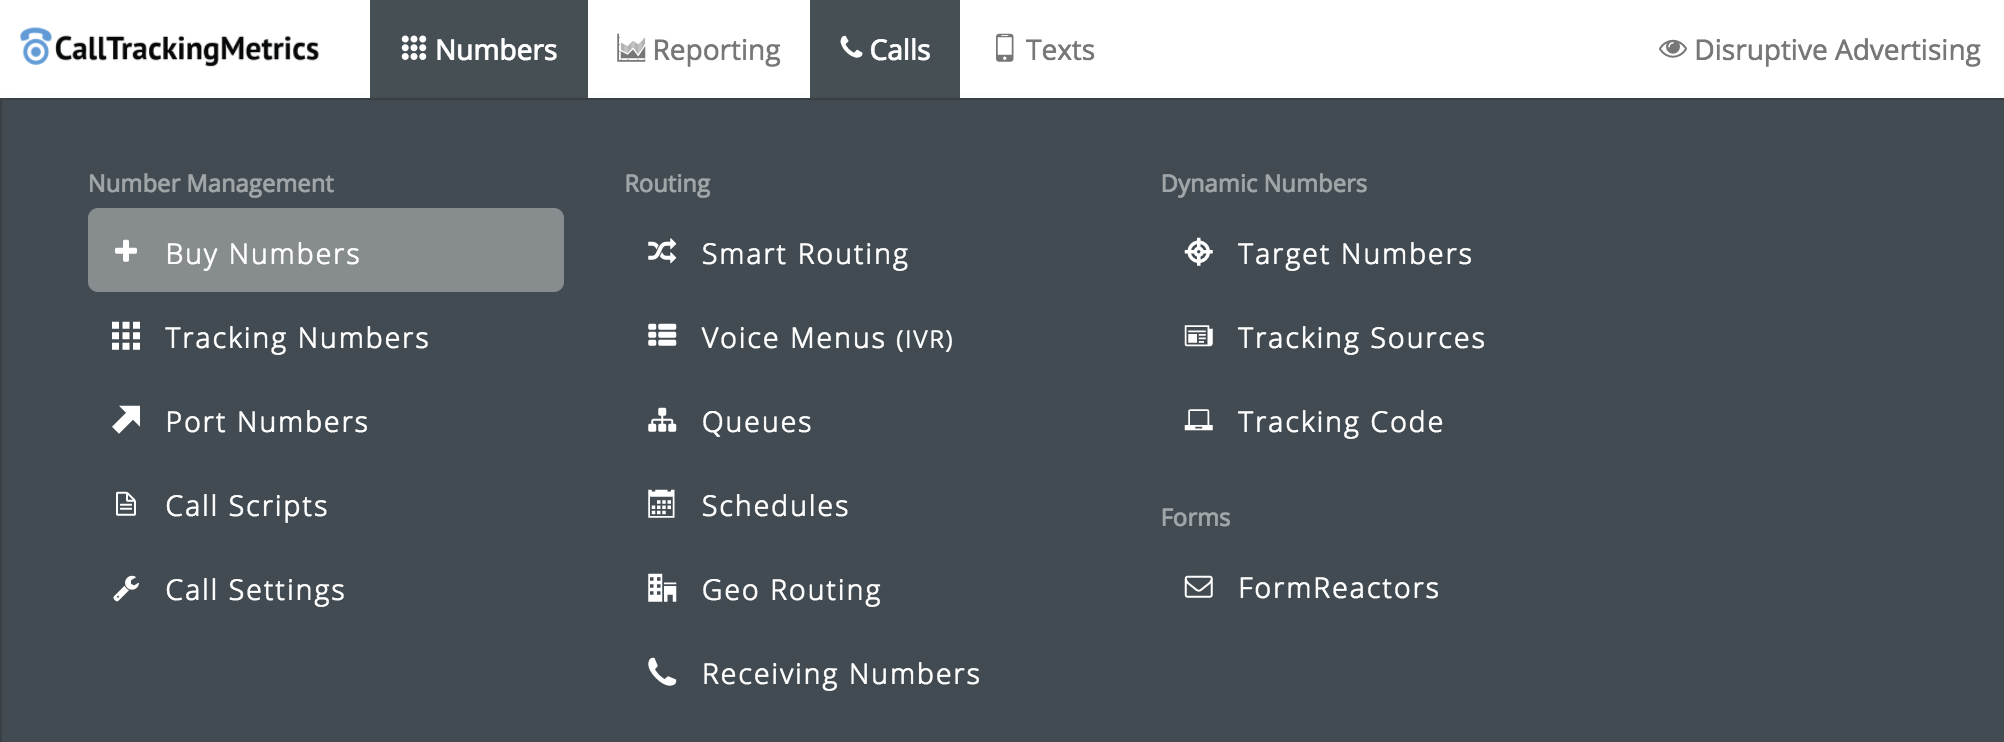 Setting Up CallTrackingMetrics: Buying Your Numbers | Disruptive Advertising